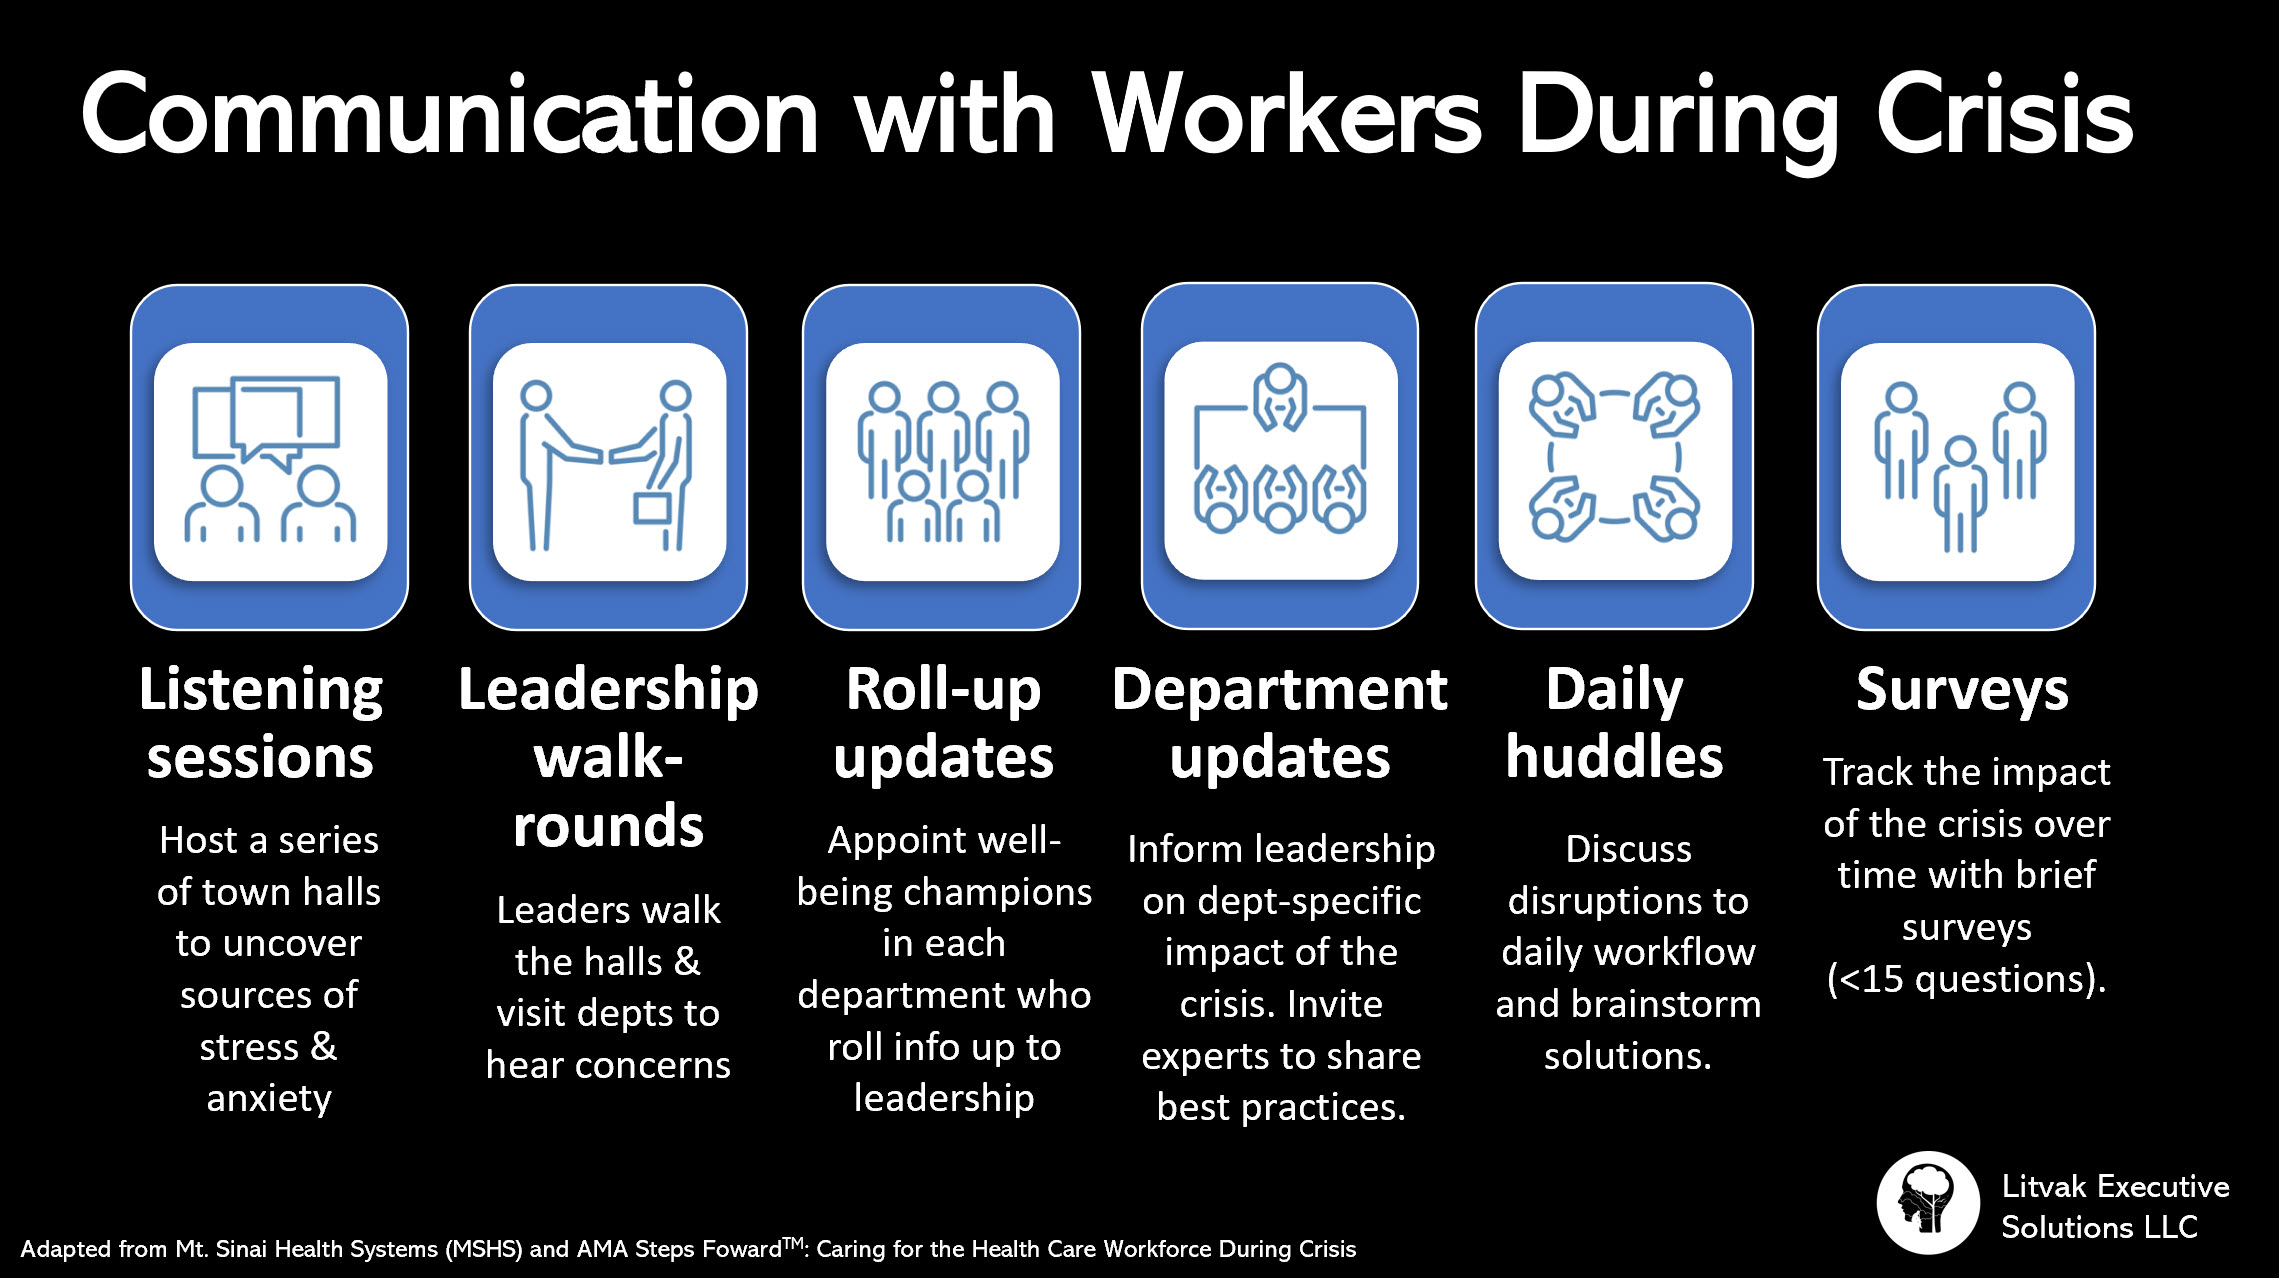 How to Communicate with Workers during a Crisis